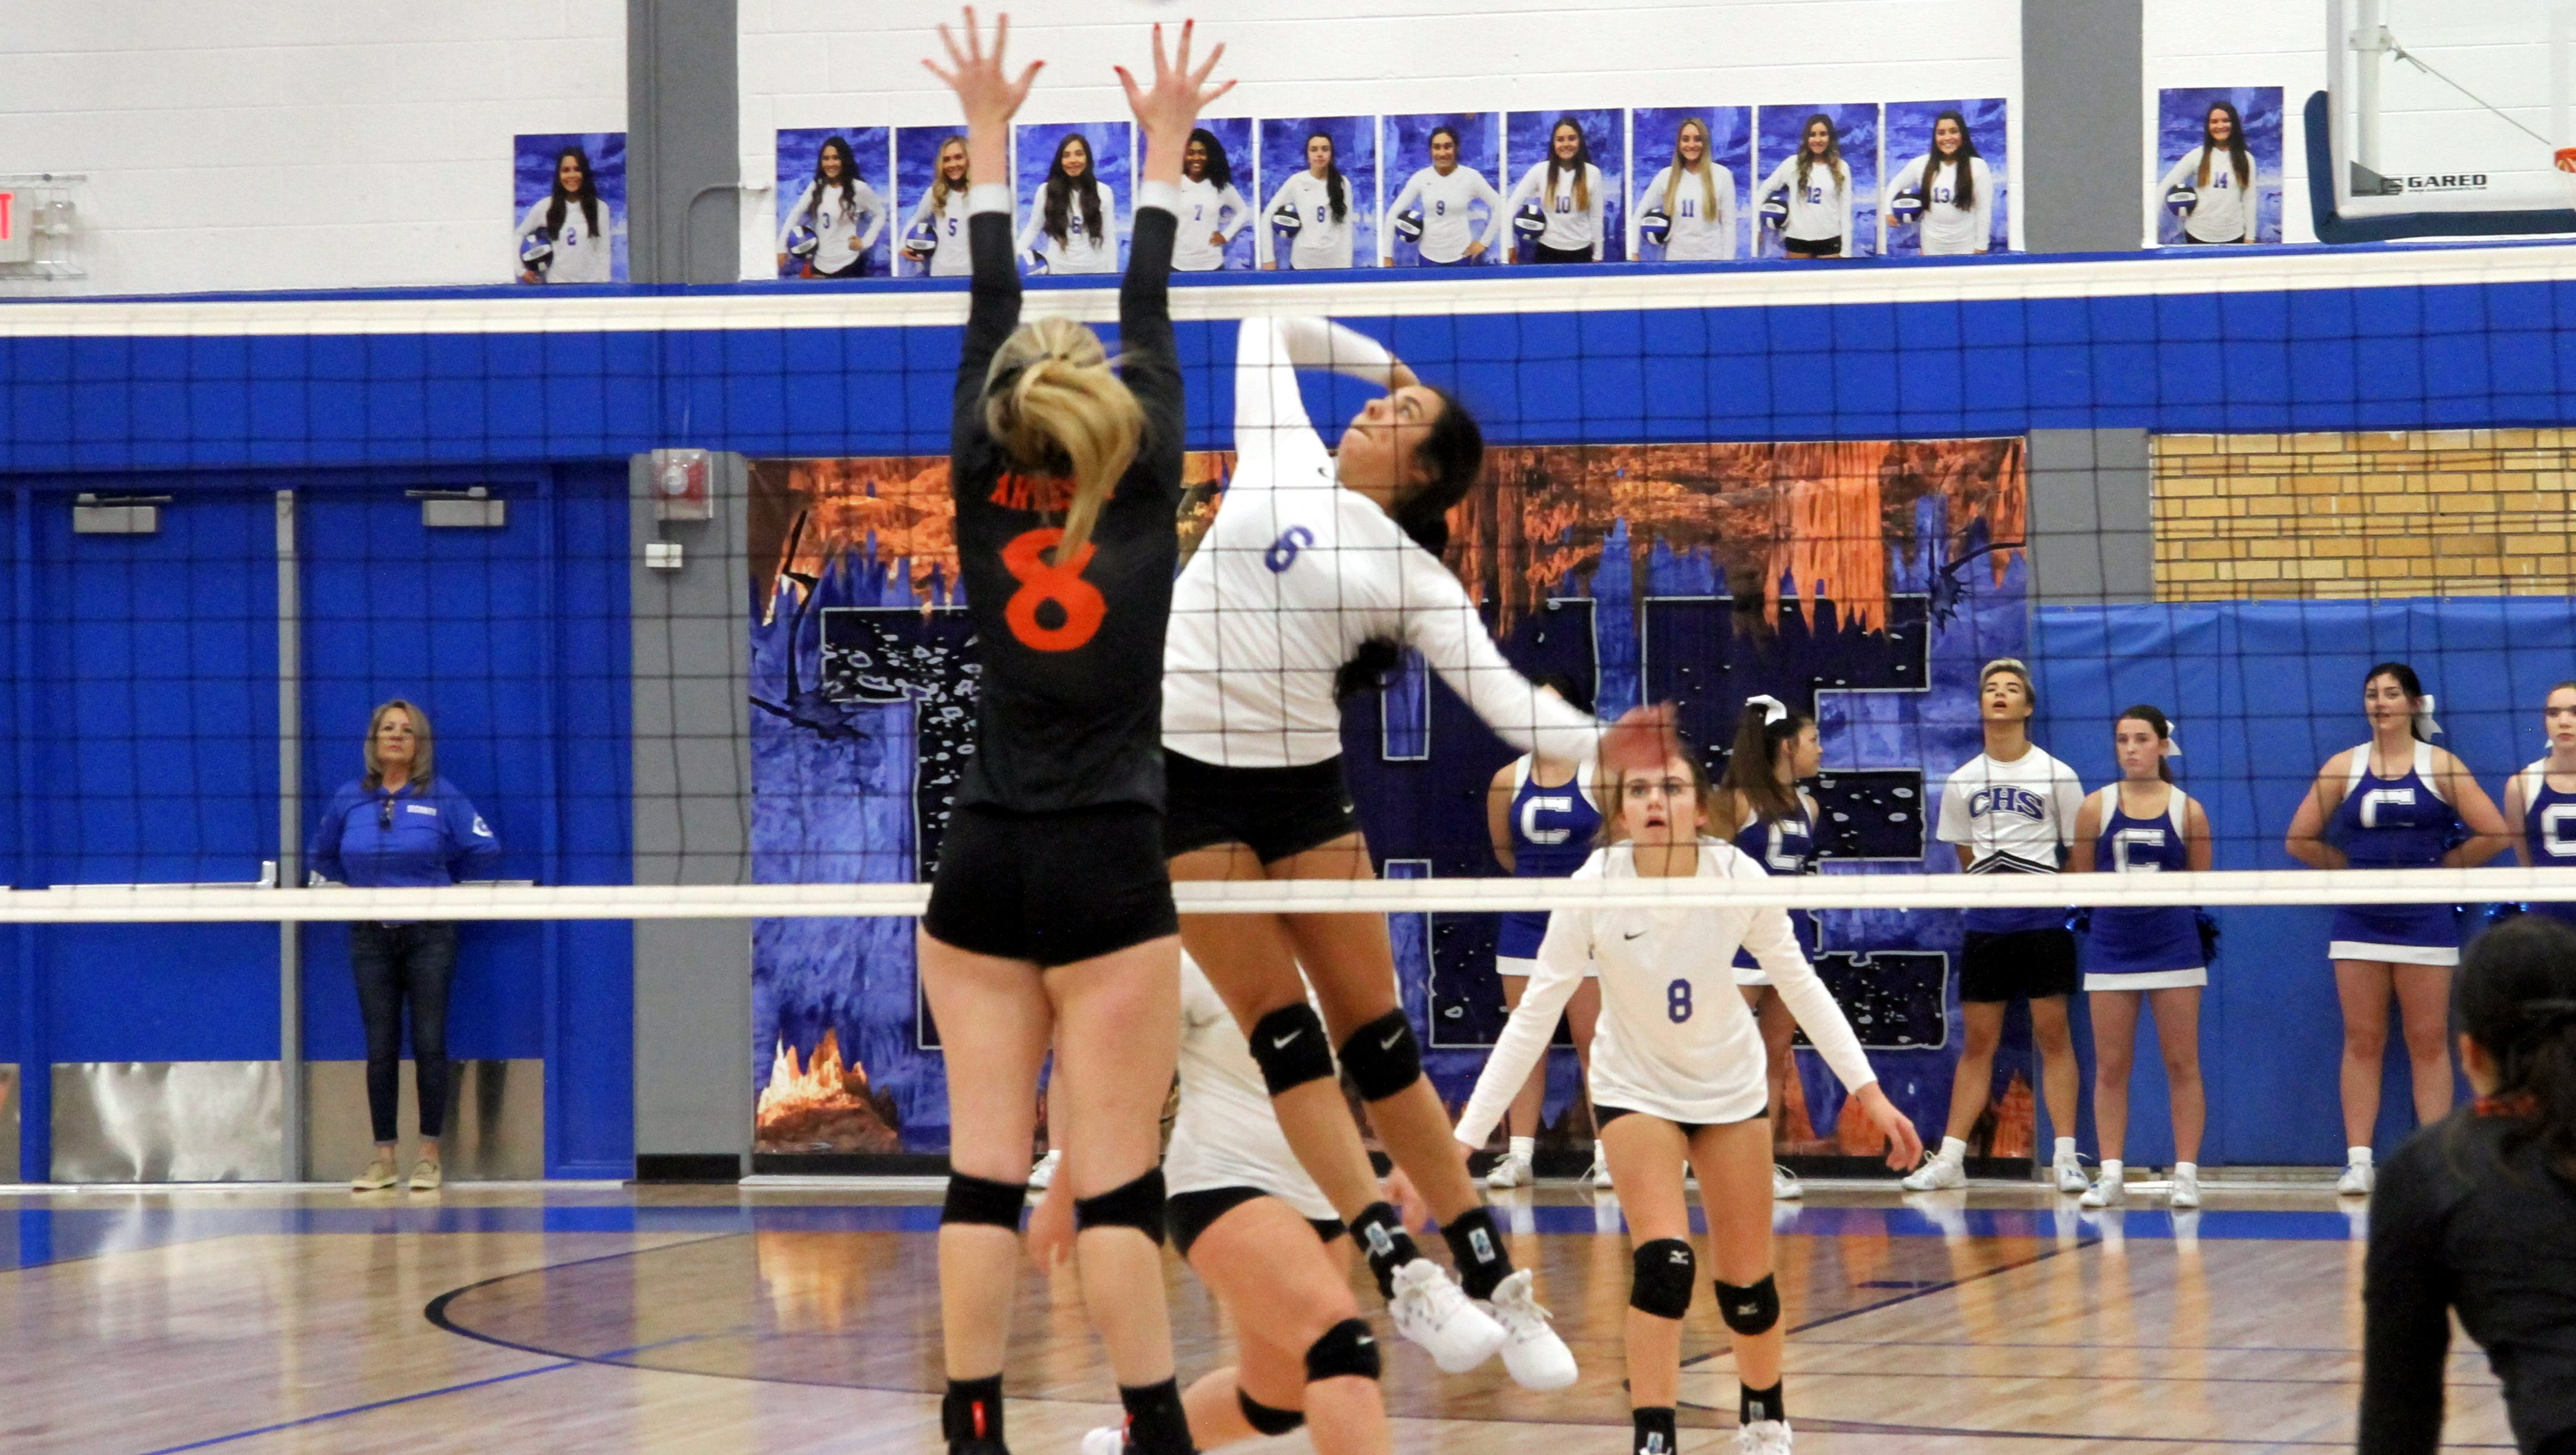 Carlsbad's Aubryanna Leos (6) goes for a spike against Artesia's Malori Mcspadden (8) during the second set of Tuesday's match. Artesia won in straight sets.